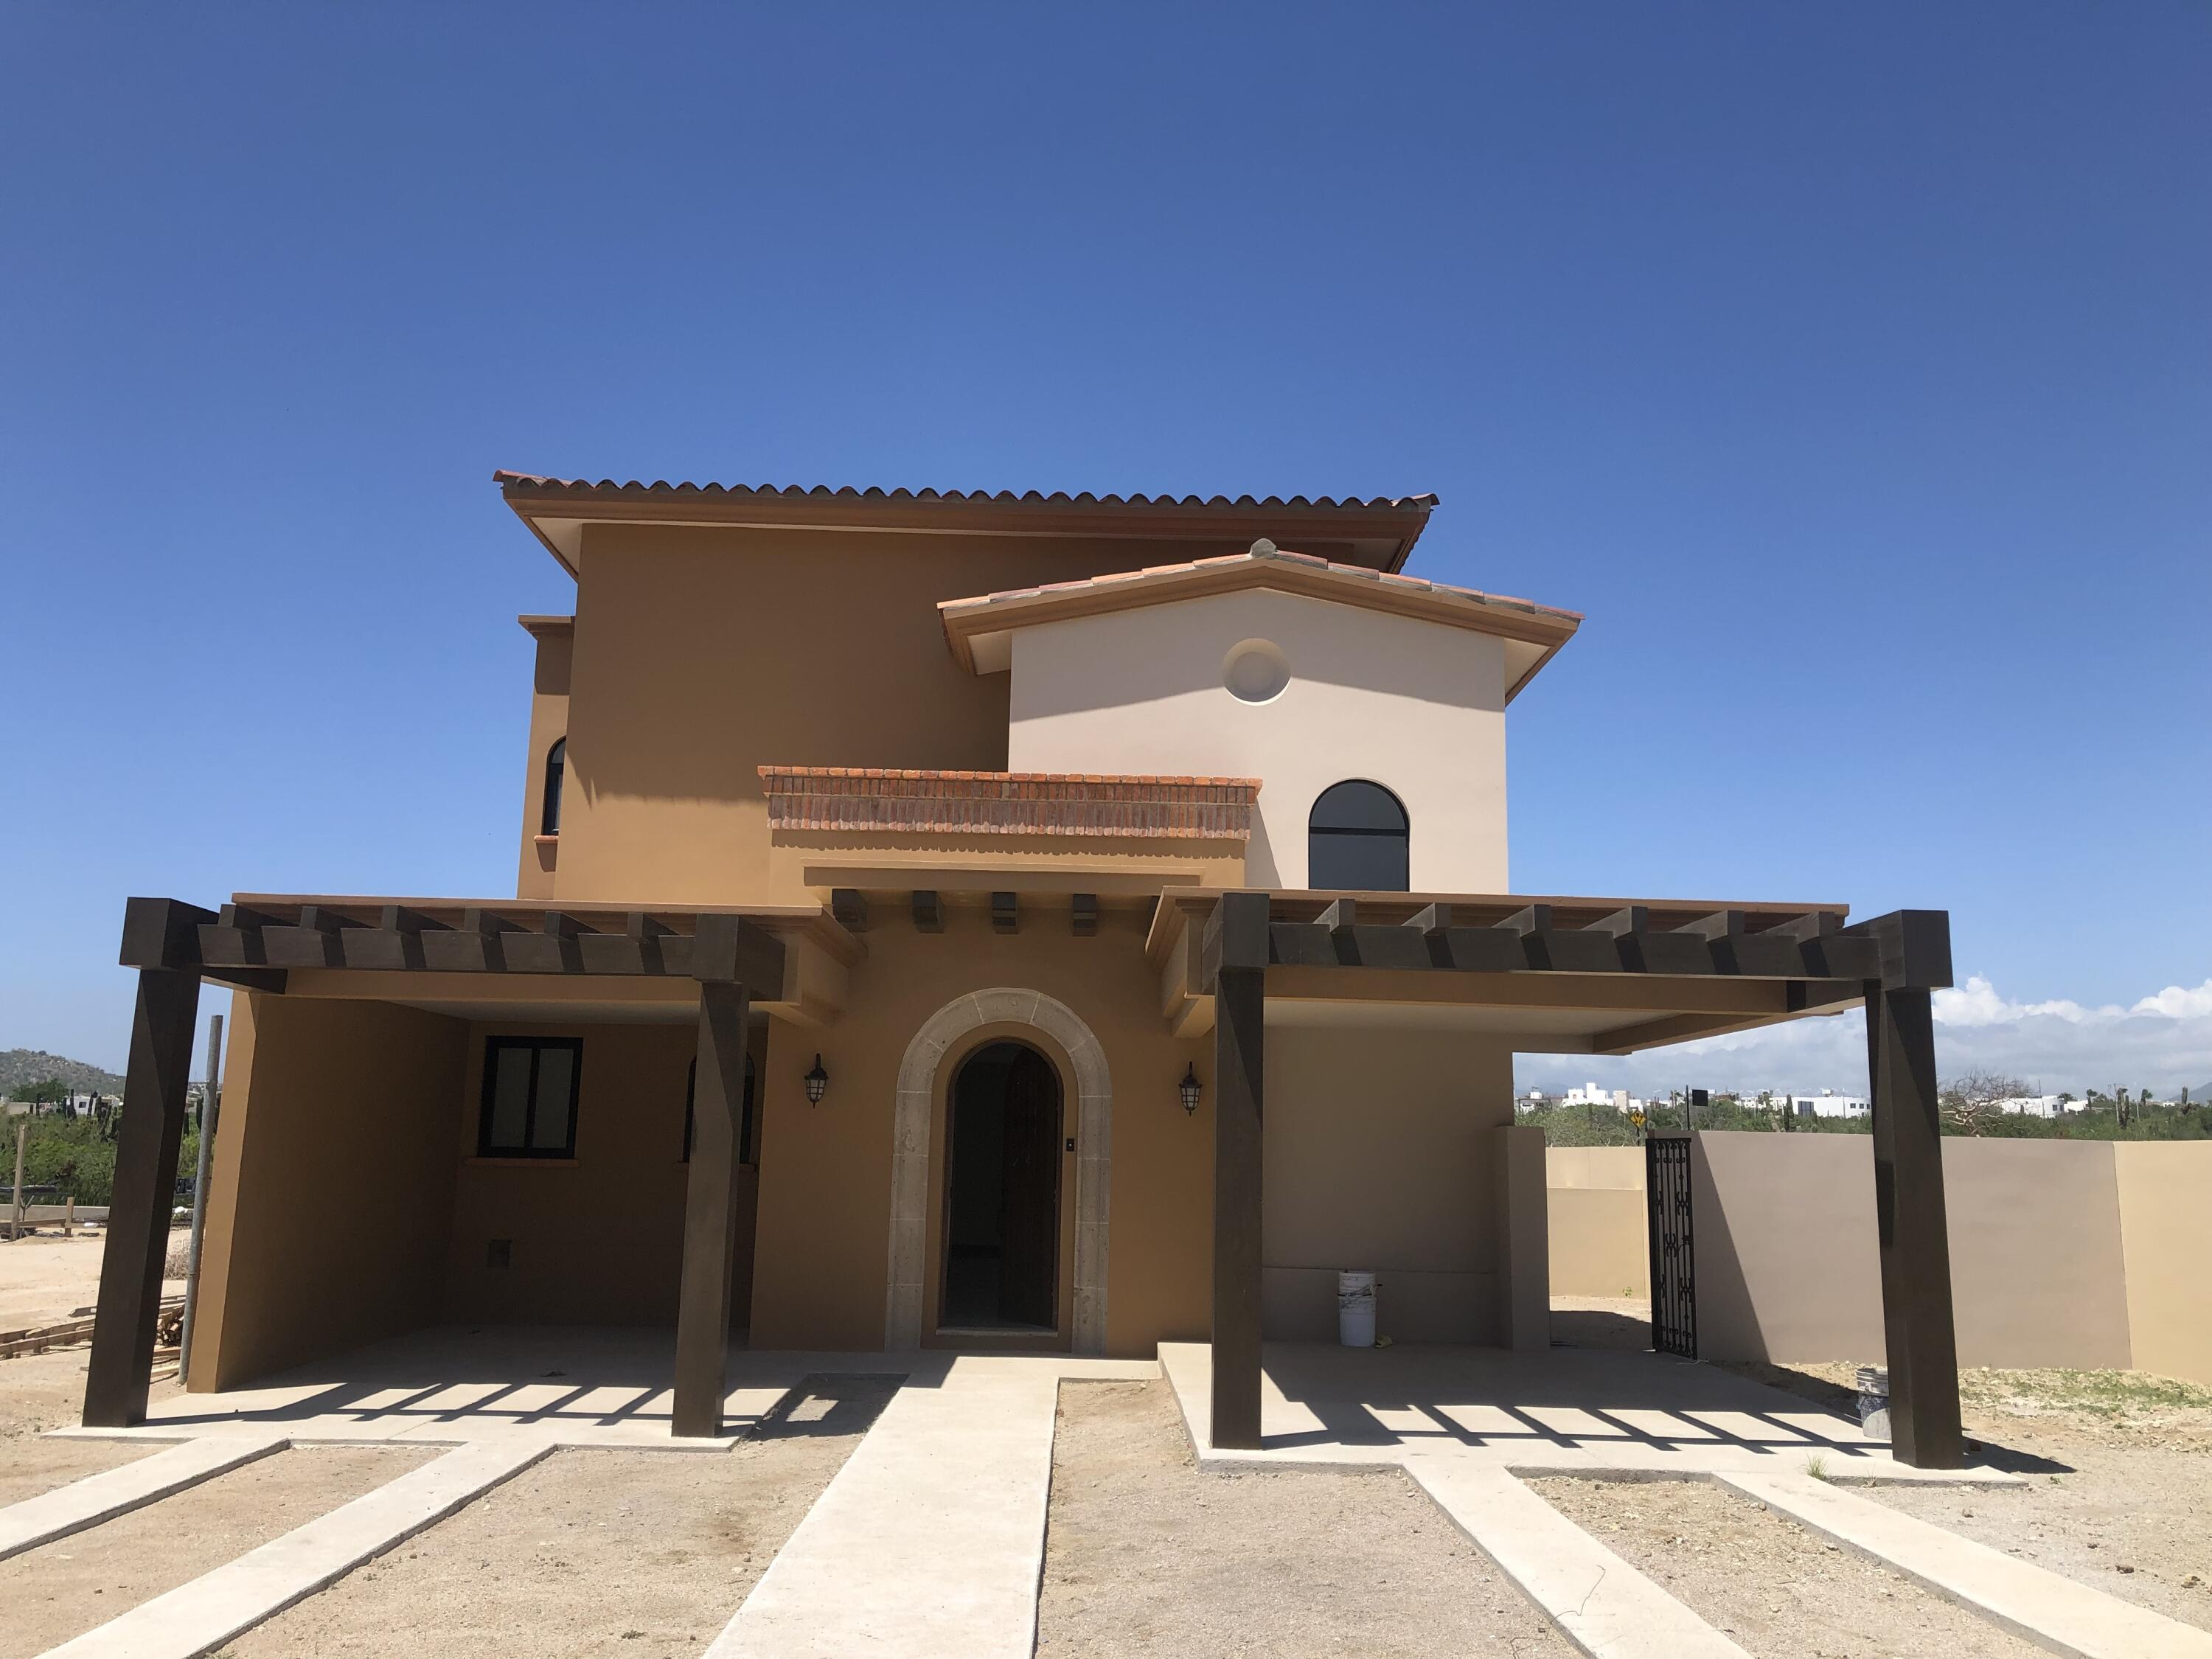 Mavila Villas are integral part of community. this 3 bedroom homes offer lots of outdoor space and garden area that can be utilized to individual liking - BBQ areas and pools can be installed as upgrade for entertaining. Two story home with main baster bedroom on the ground  level connected to the living, kitchen and dining area. Two bedrooms located on the 1st floor offer private terraces for future golf course views. Modern finish, granite counter tops in the kitchen, wood grain kitchen cabinetry with complete appliance package: induction stove/electric oven, stainless recirculating hood, stainless fridge with water/ice, stainless sink, stainless dishwasher. Simulated wood ceramic floor give light feel and light. Utility closet has plumbing for electric washer/dryer center. Mavila home owners can enjoy private community amenities such as: pools, jacuzzis, BBQ areas, park, gym, concierge services, event salon and in addition for an optional $60 USD per month fee access to Quivira Amenities with Special Discounts to Spa, Restaurants and 18 hole Jack Nicklaus Signature Course. Quivila Q- Life events and ongoing resort like living activities are just an extra cherry on the cake for any Mavila owner.   Upcoming Beach Club will offer as well variety of pools, kids activities, high end and casual dining, market and more. ... something to look for ward to.. Phase 1 completed end 2022.   Mavila Living Opportunity is Like no other. For owners and renters alike. Having availability of endless amenities makes Mavila an ideal Renters Paradise. High ROI